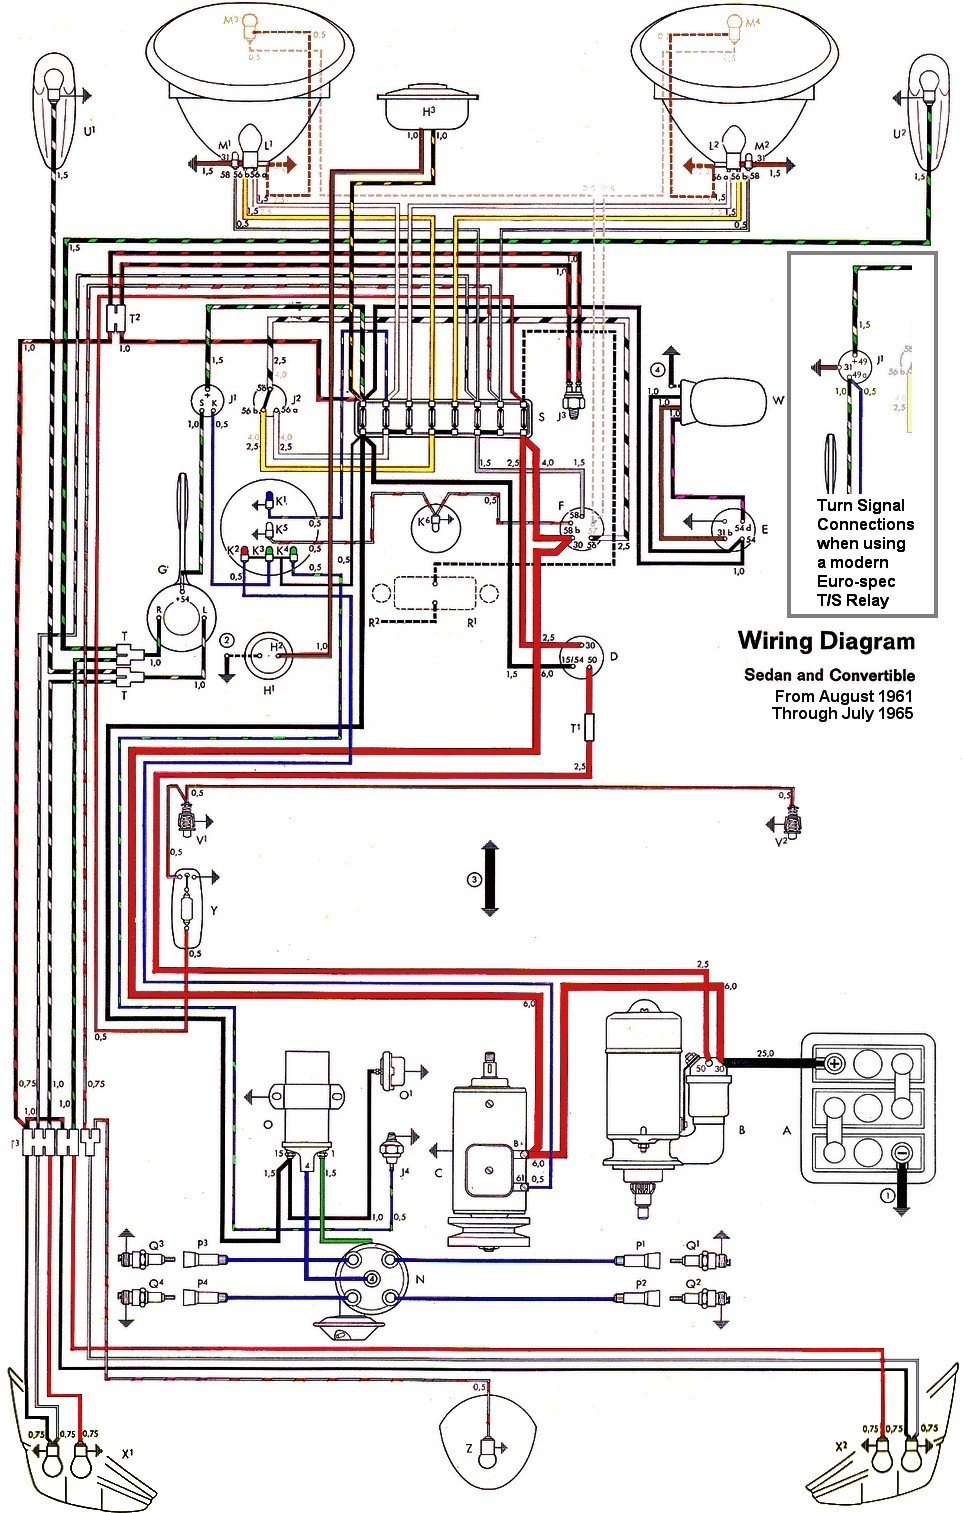 bug_62 65withinset vw type 1 wiring diagram 1961 vw type 1 wiring diagram \u2022 wiring 1969 vw squareback wiring diagram at webbmarketing.co